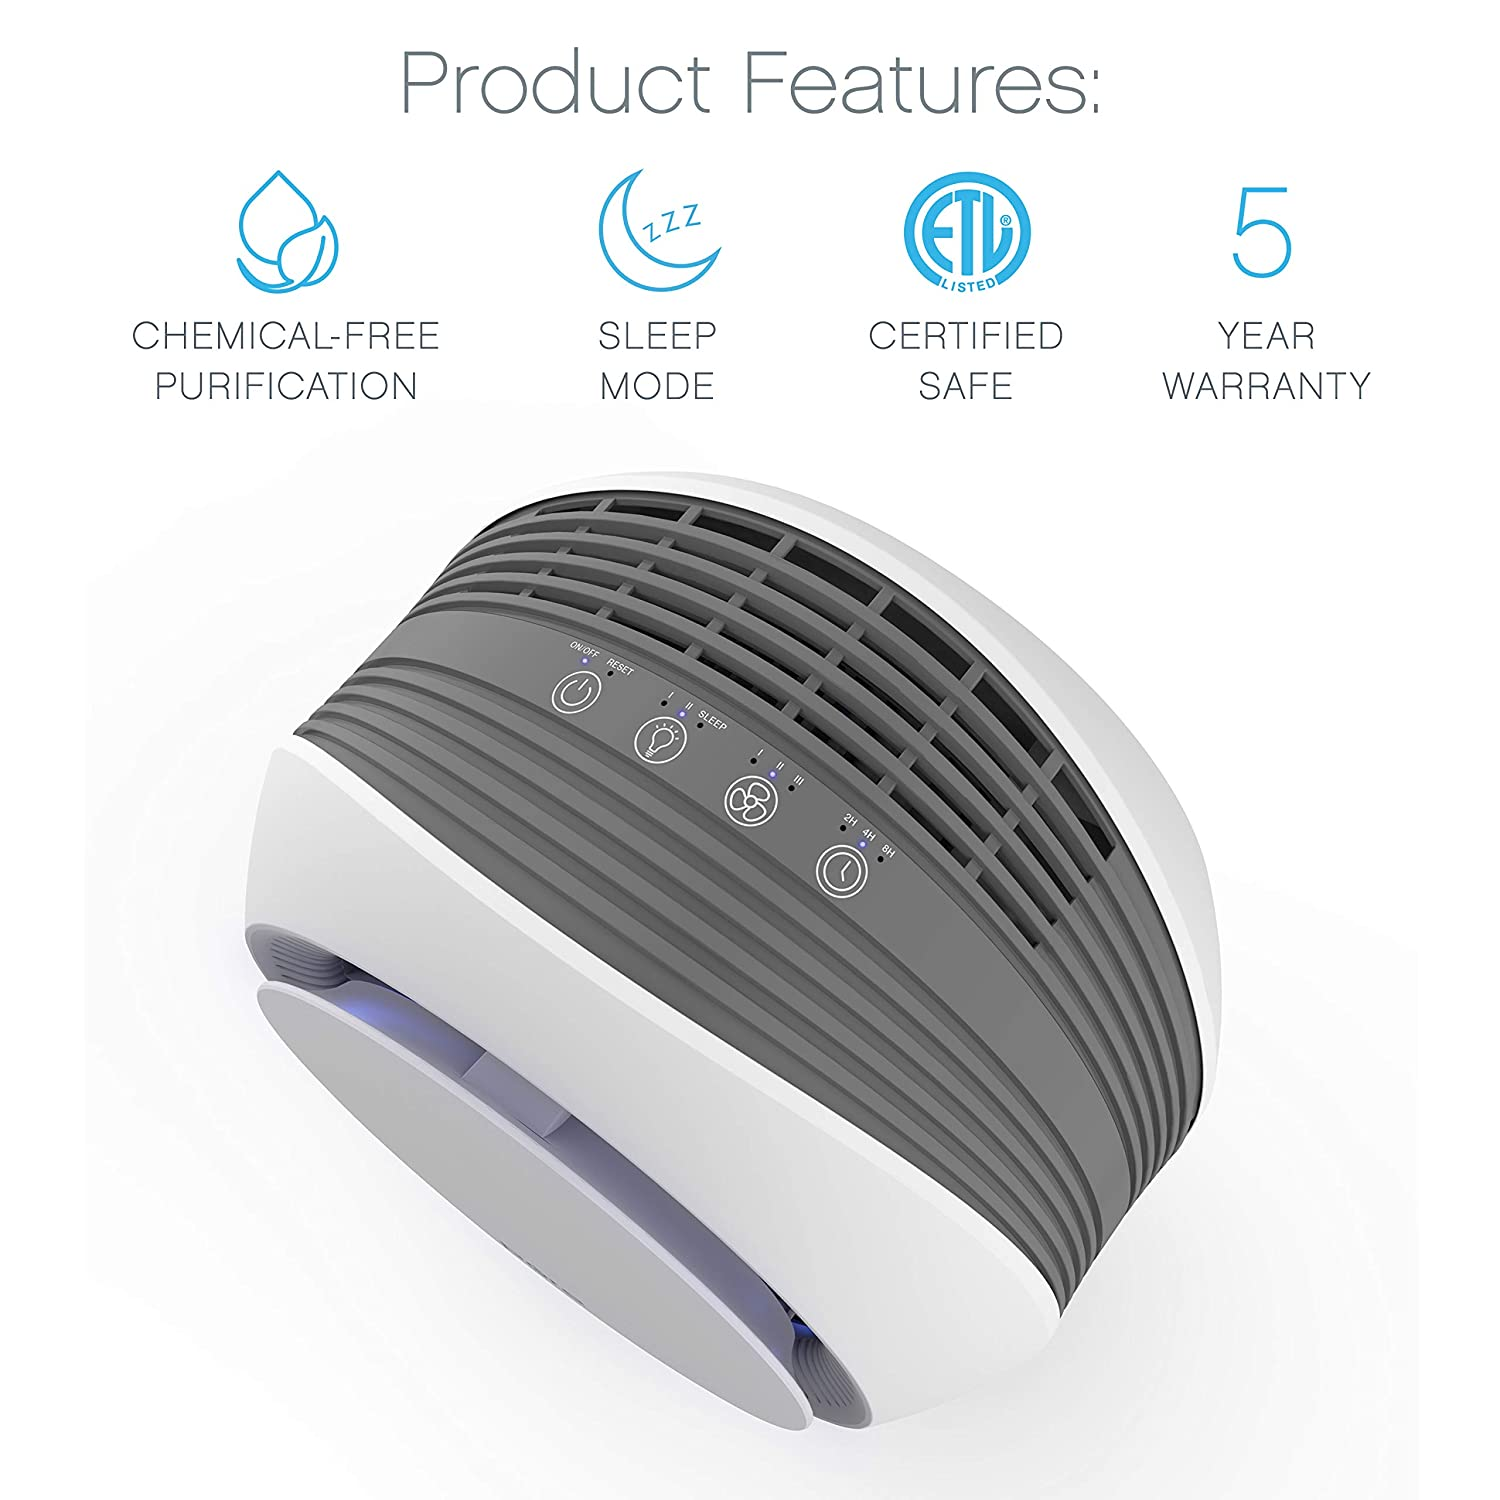 Pure Enrichment PureZone Halo 2-in-1 True HEPA Air Purifier for Home, Office, Bedroom and Desktops with 3 Fan Speeds, Auto-Off Timer and Night Light – Eliminates Dust, Pollen, Pet Dander, Smoke, Mold